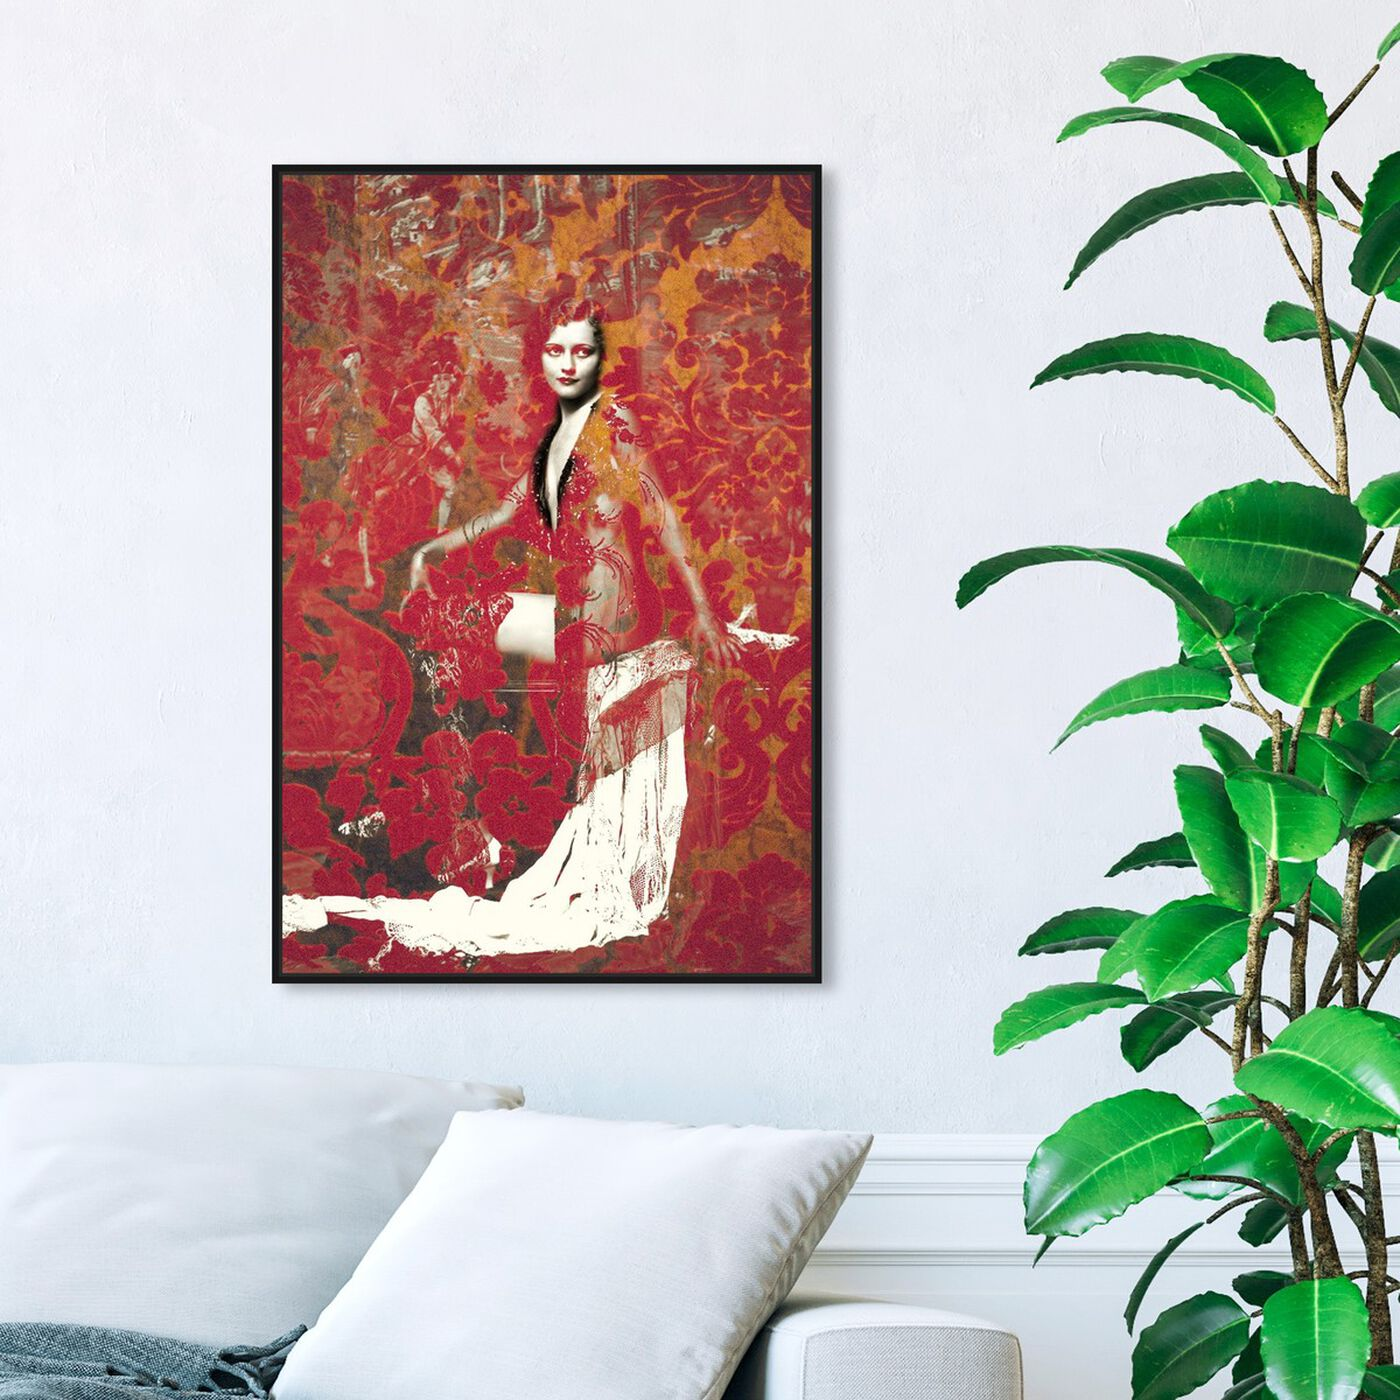 Hanging view of Ann Lee Zeigfeld featuring classic and figurative and classic art.